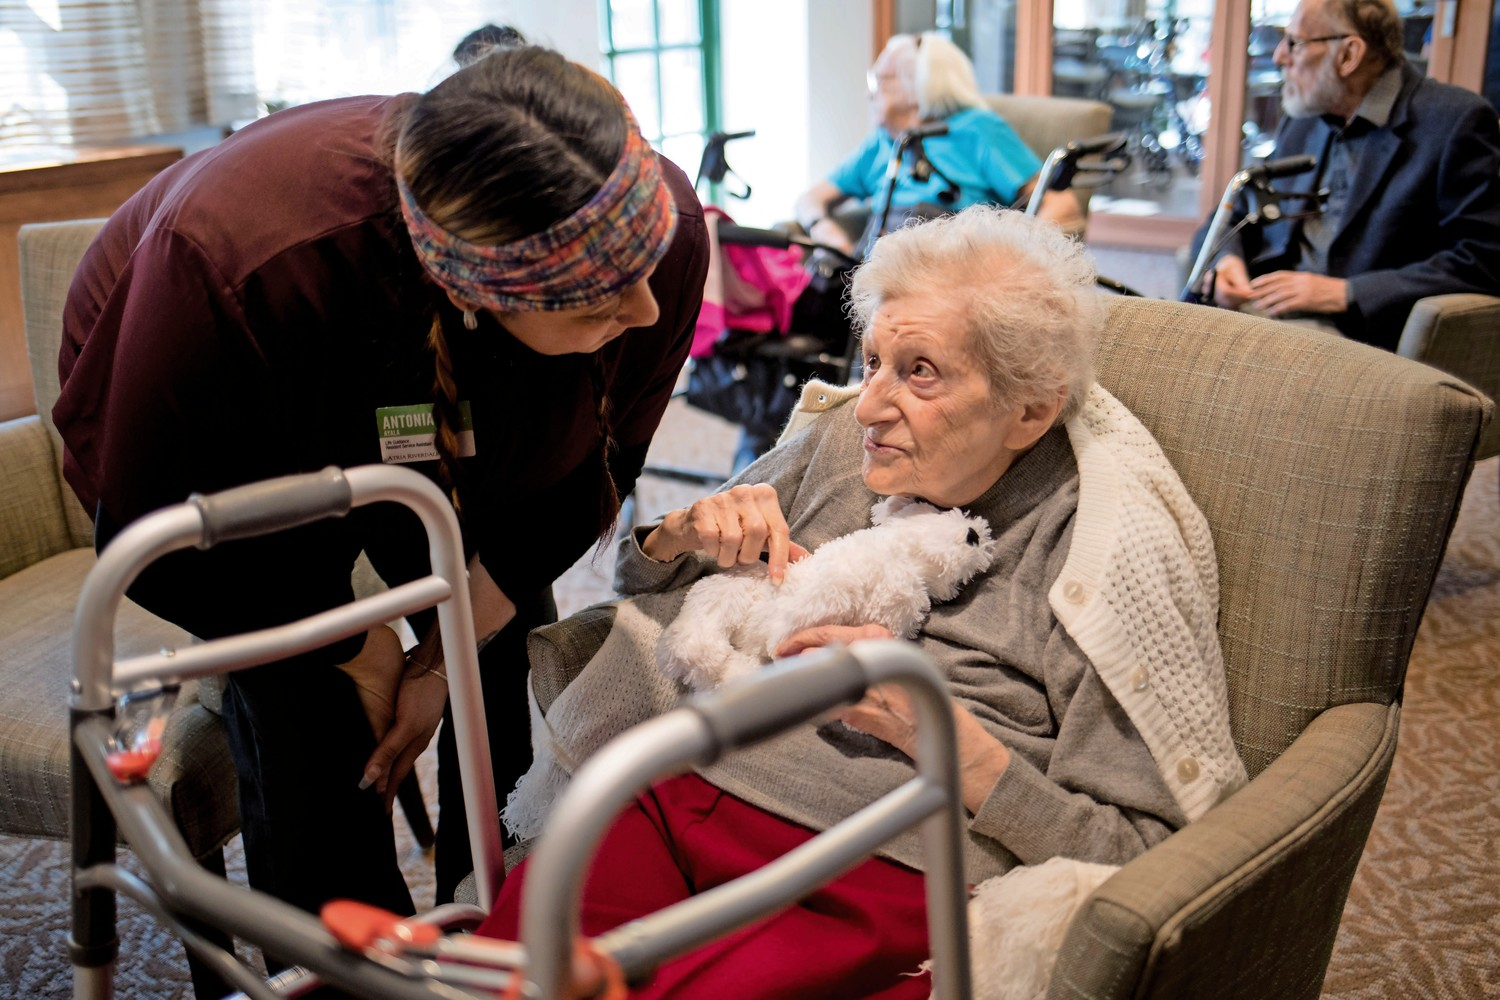 Florence Zimmerman, a 103-year-old former judge, holds her stuffed animal, Poopskie, as she hears about the plan for lunch from her caregiver, Antonia Ayala, at Atria Riverdale.